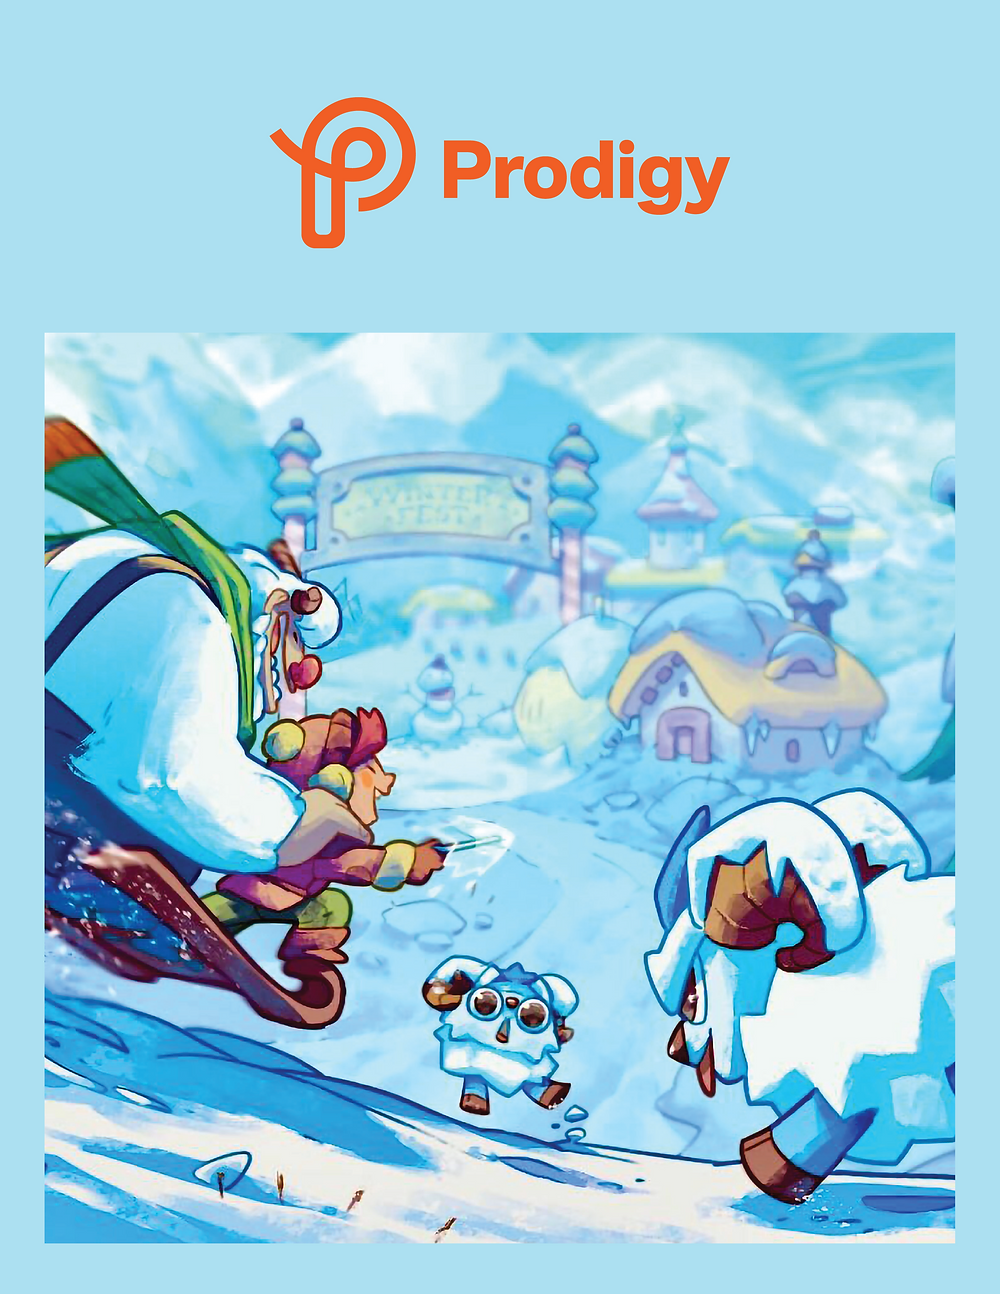 Characters and a scene from Prodigy